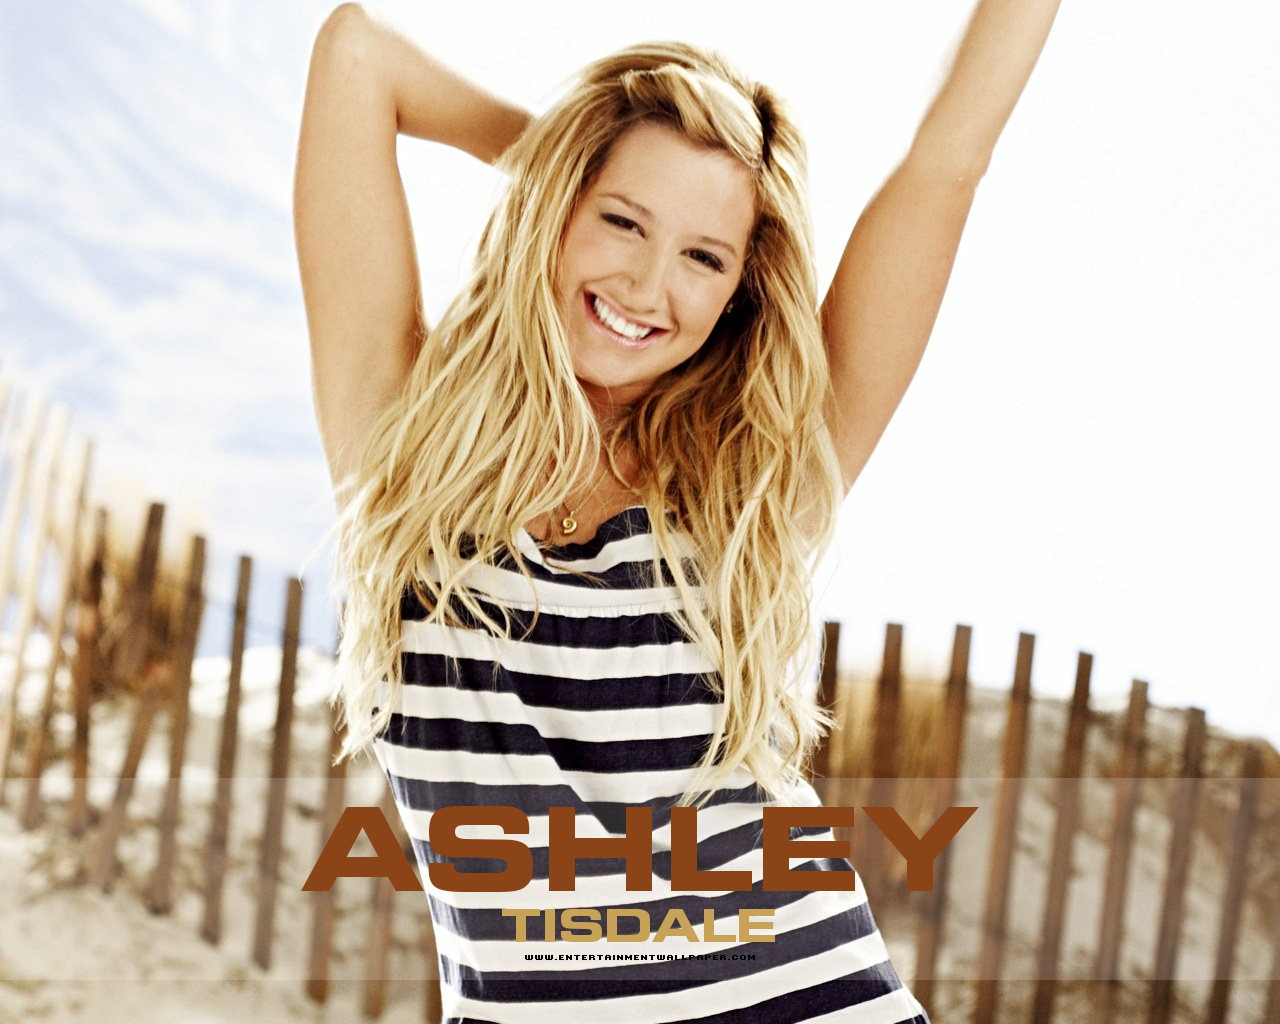 1280x1024 - Ashley Tisdale Wallpapers 25